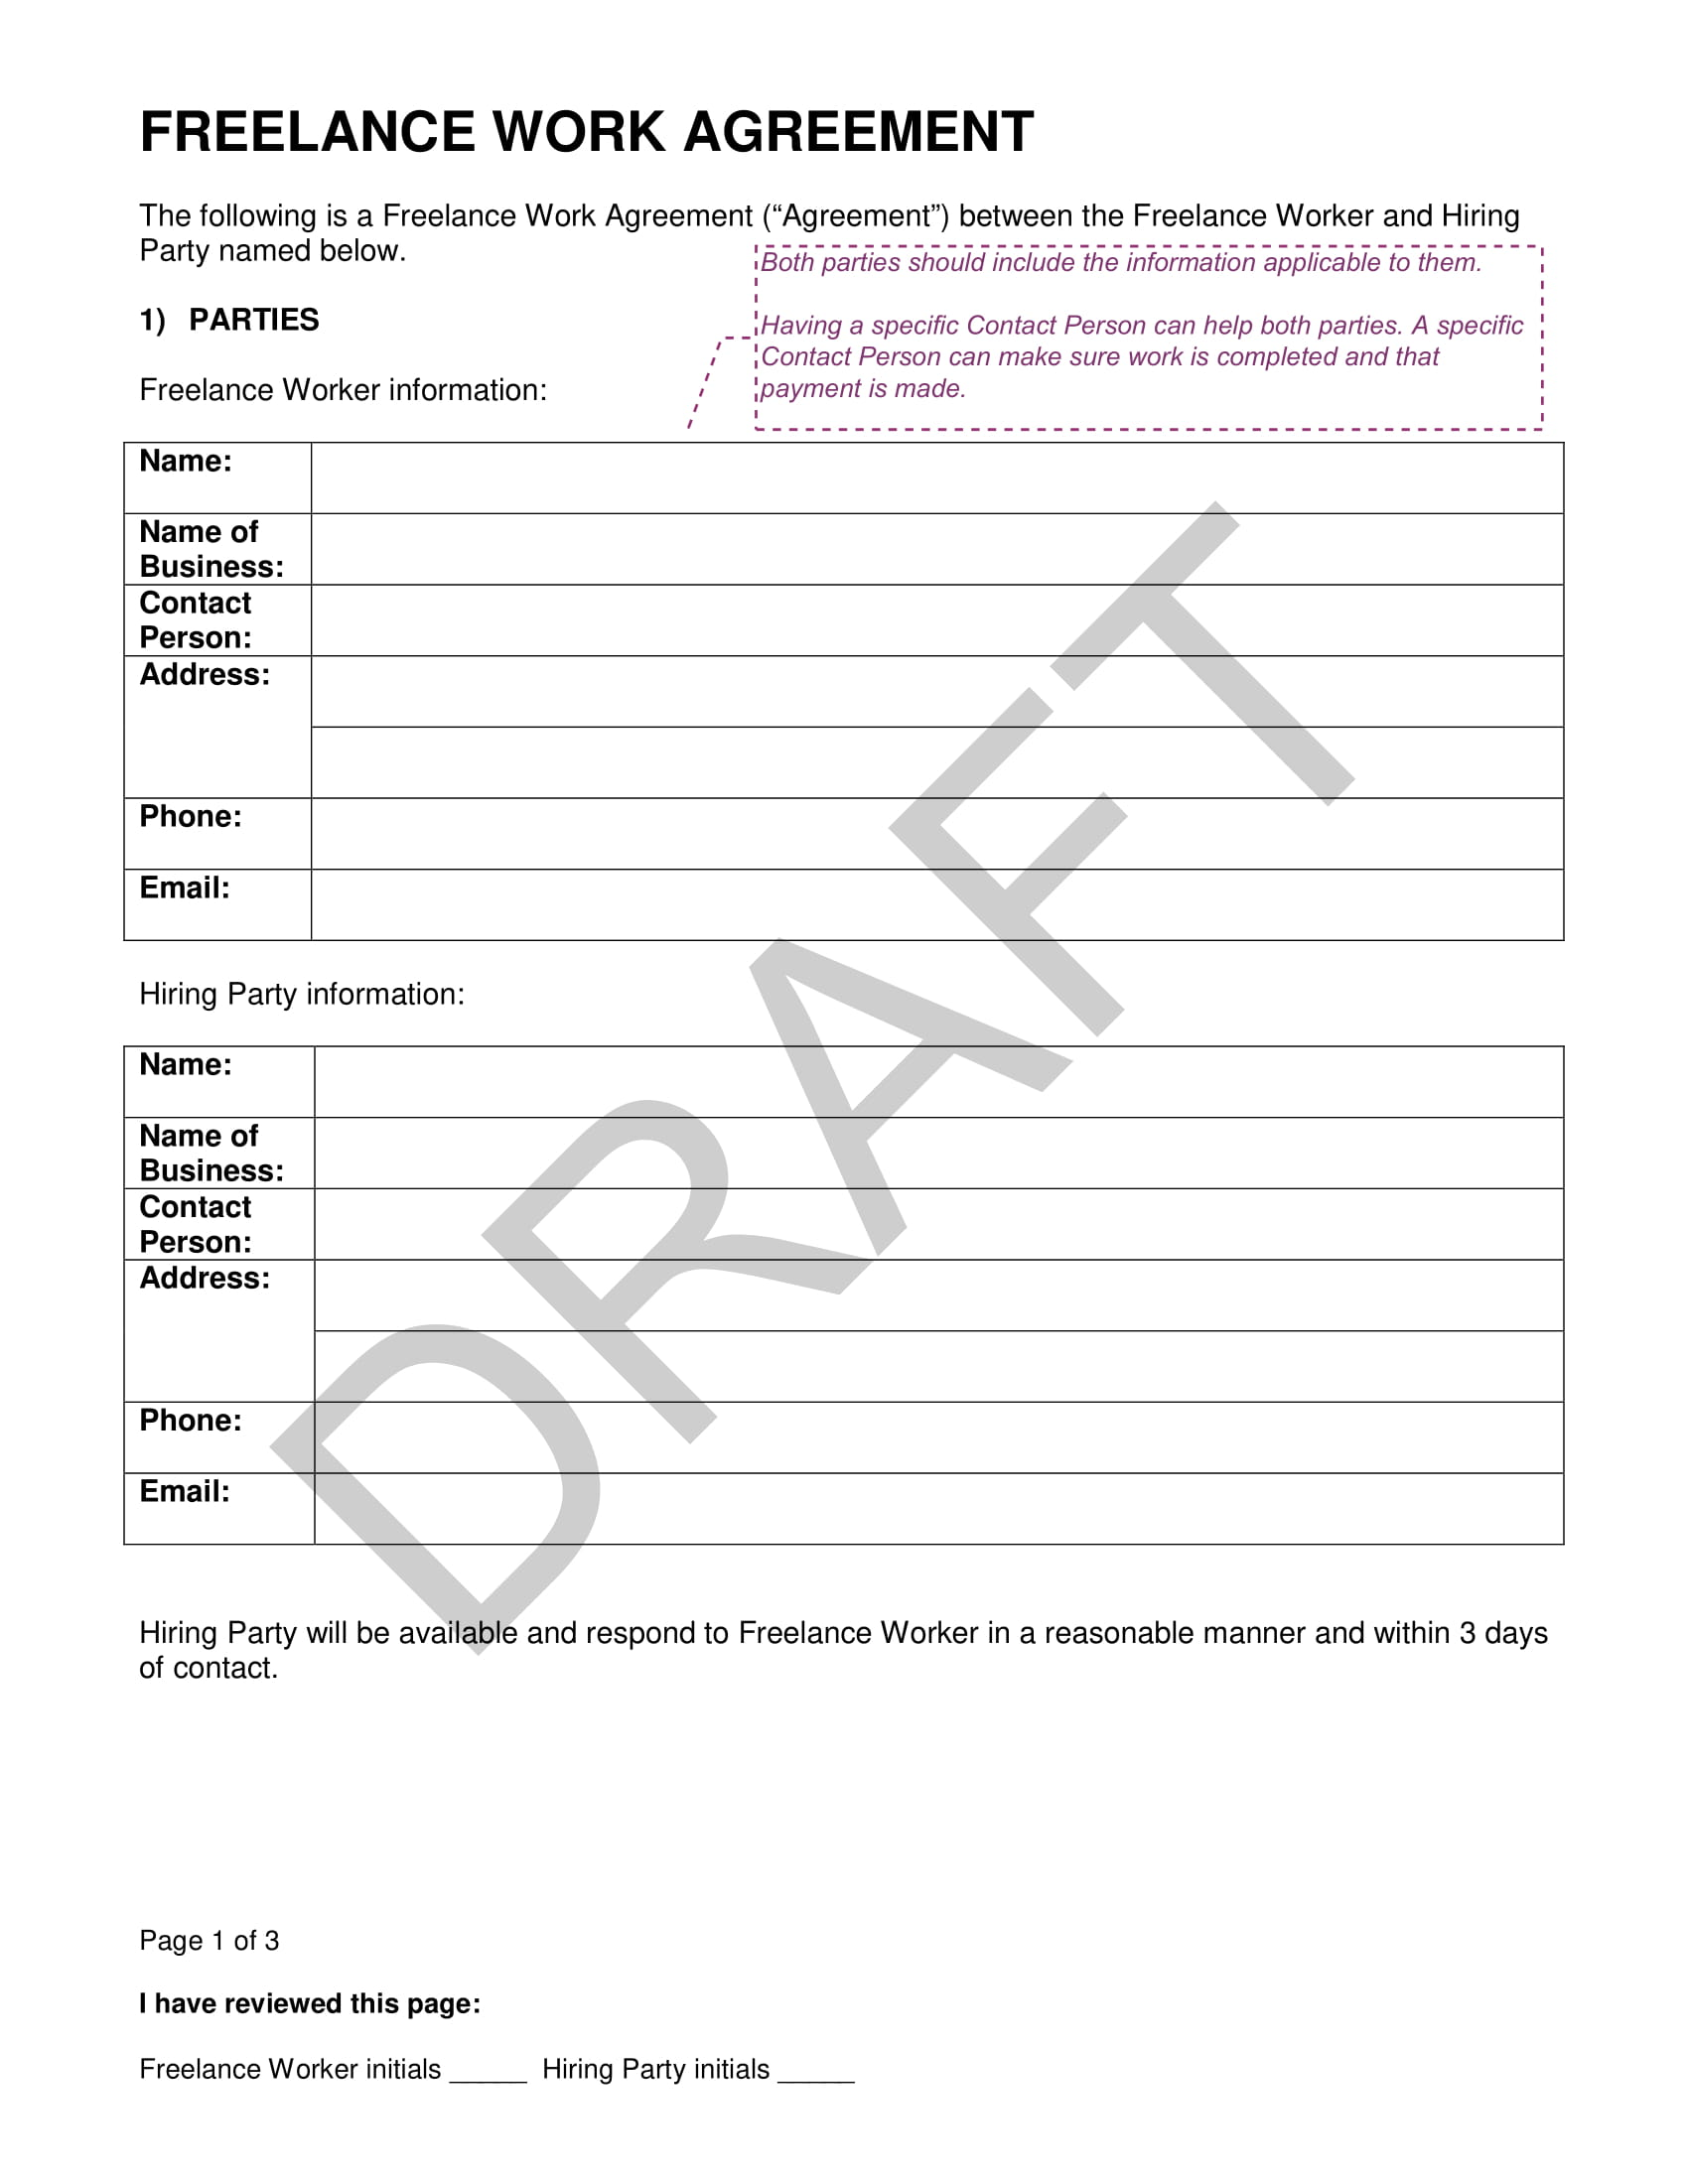 freelance work agreement contract for developers template example 1